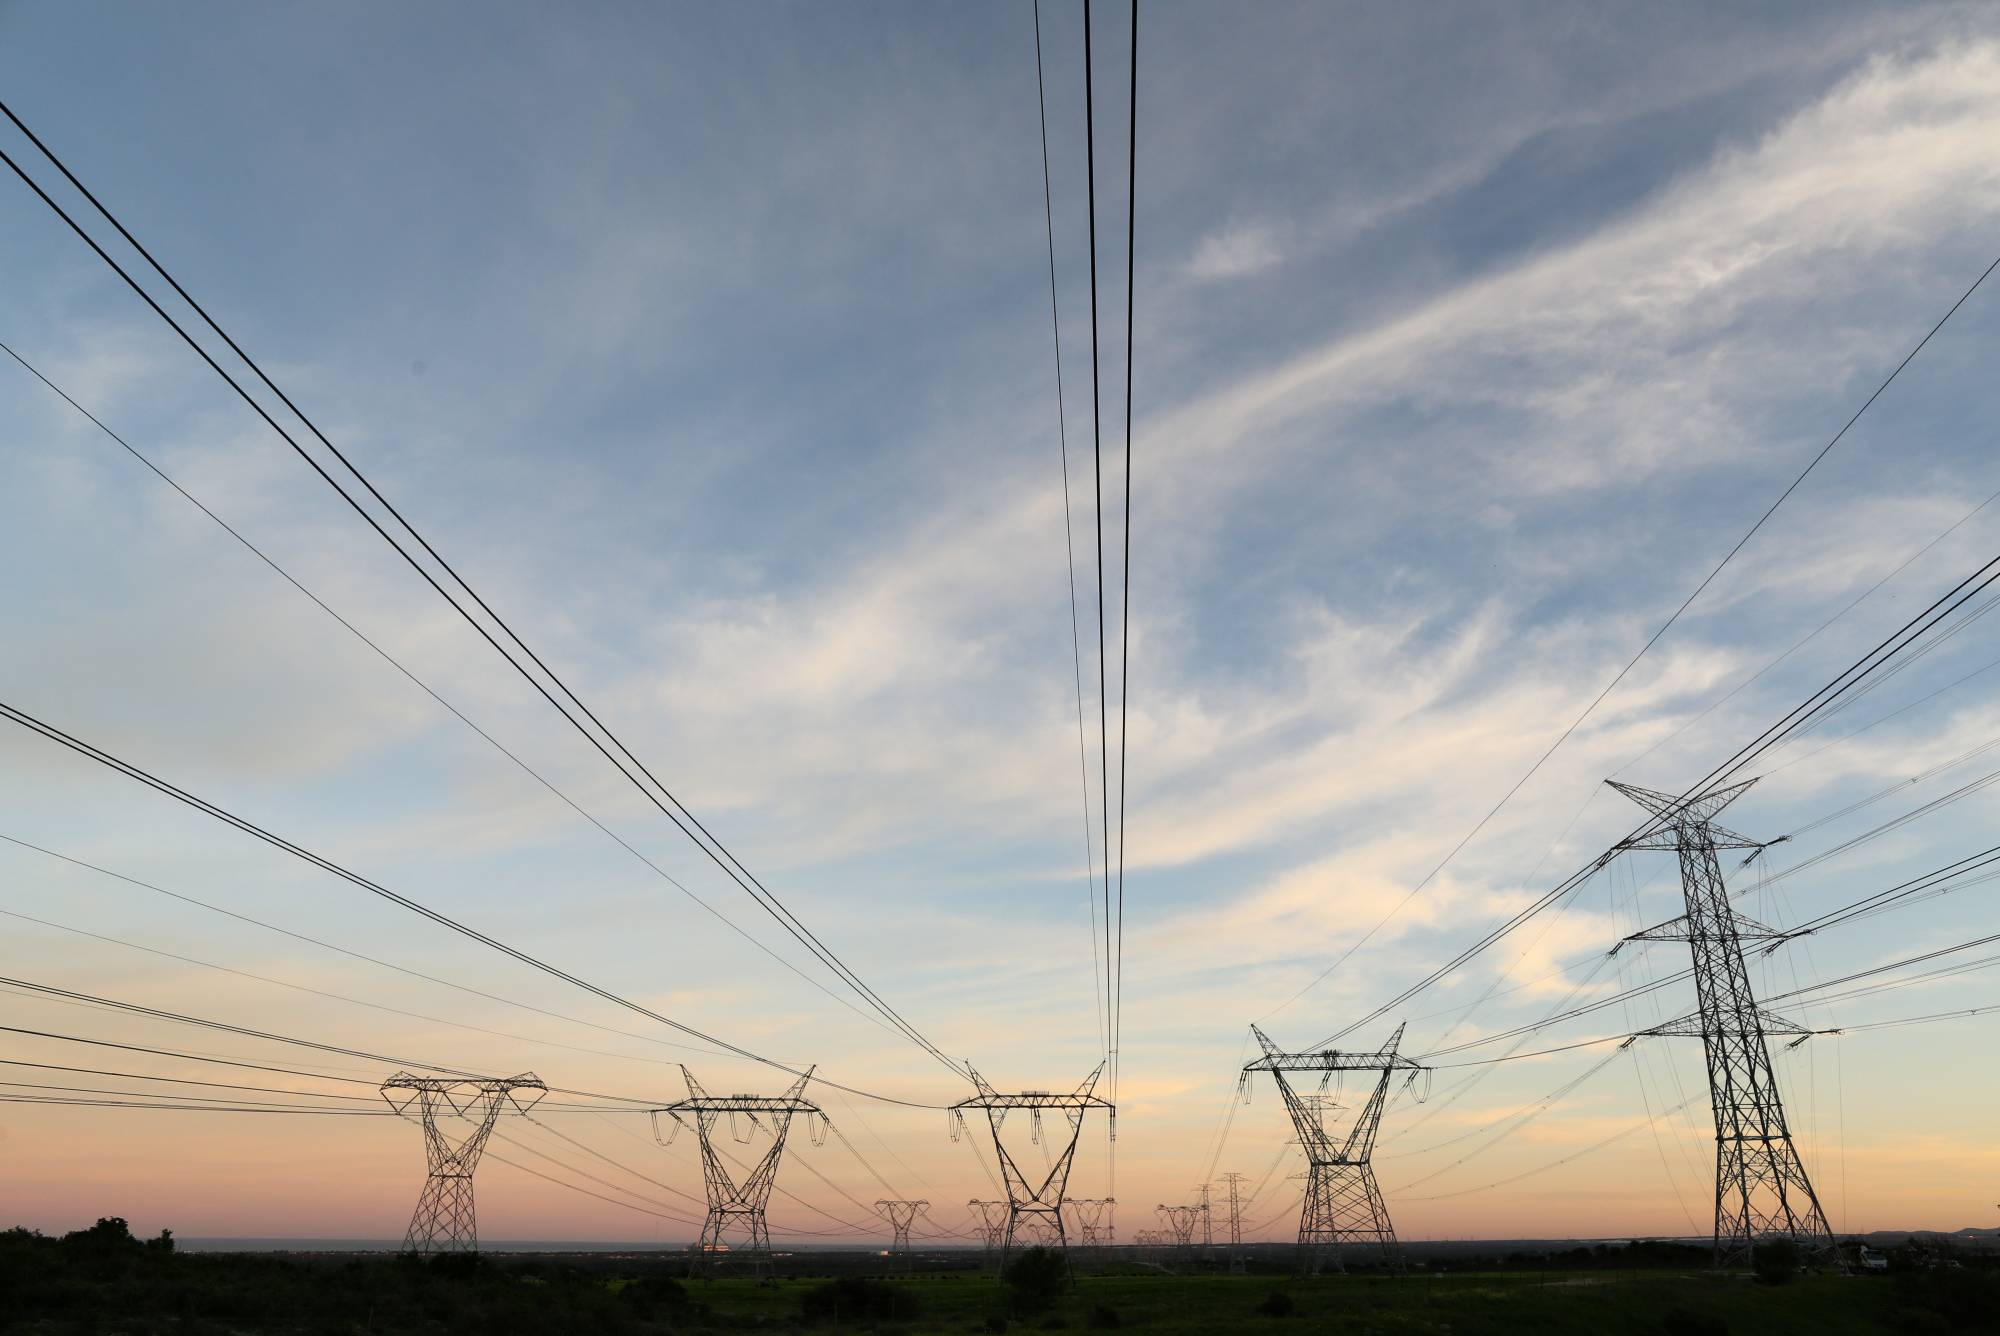 Electricity pylons carrying power from the Koeberg nuclear power plant in South Africa | REUTERS